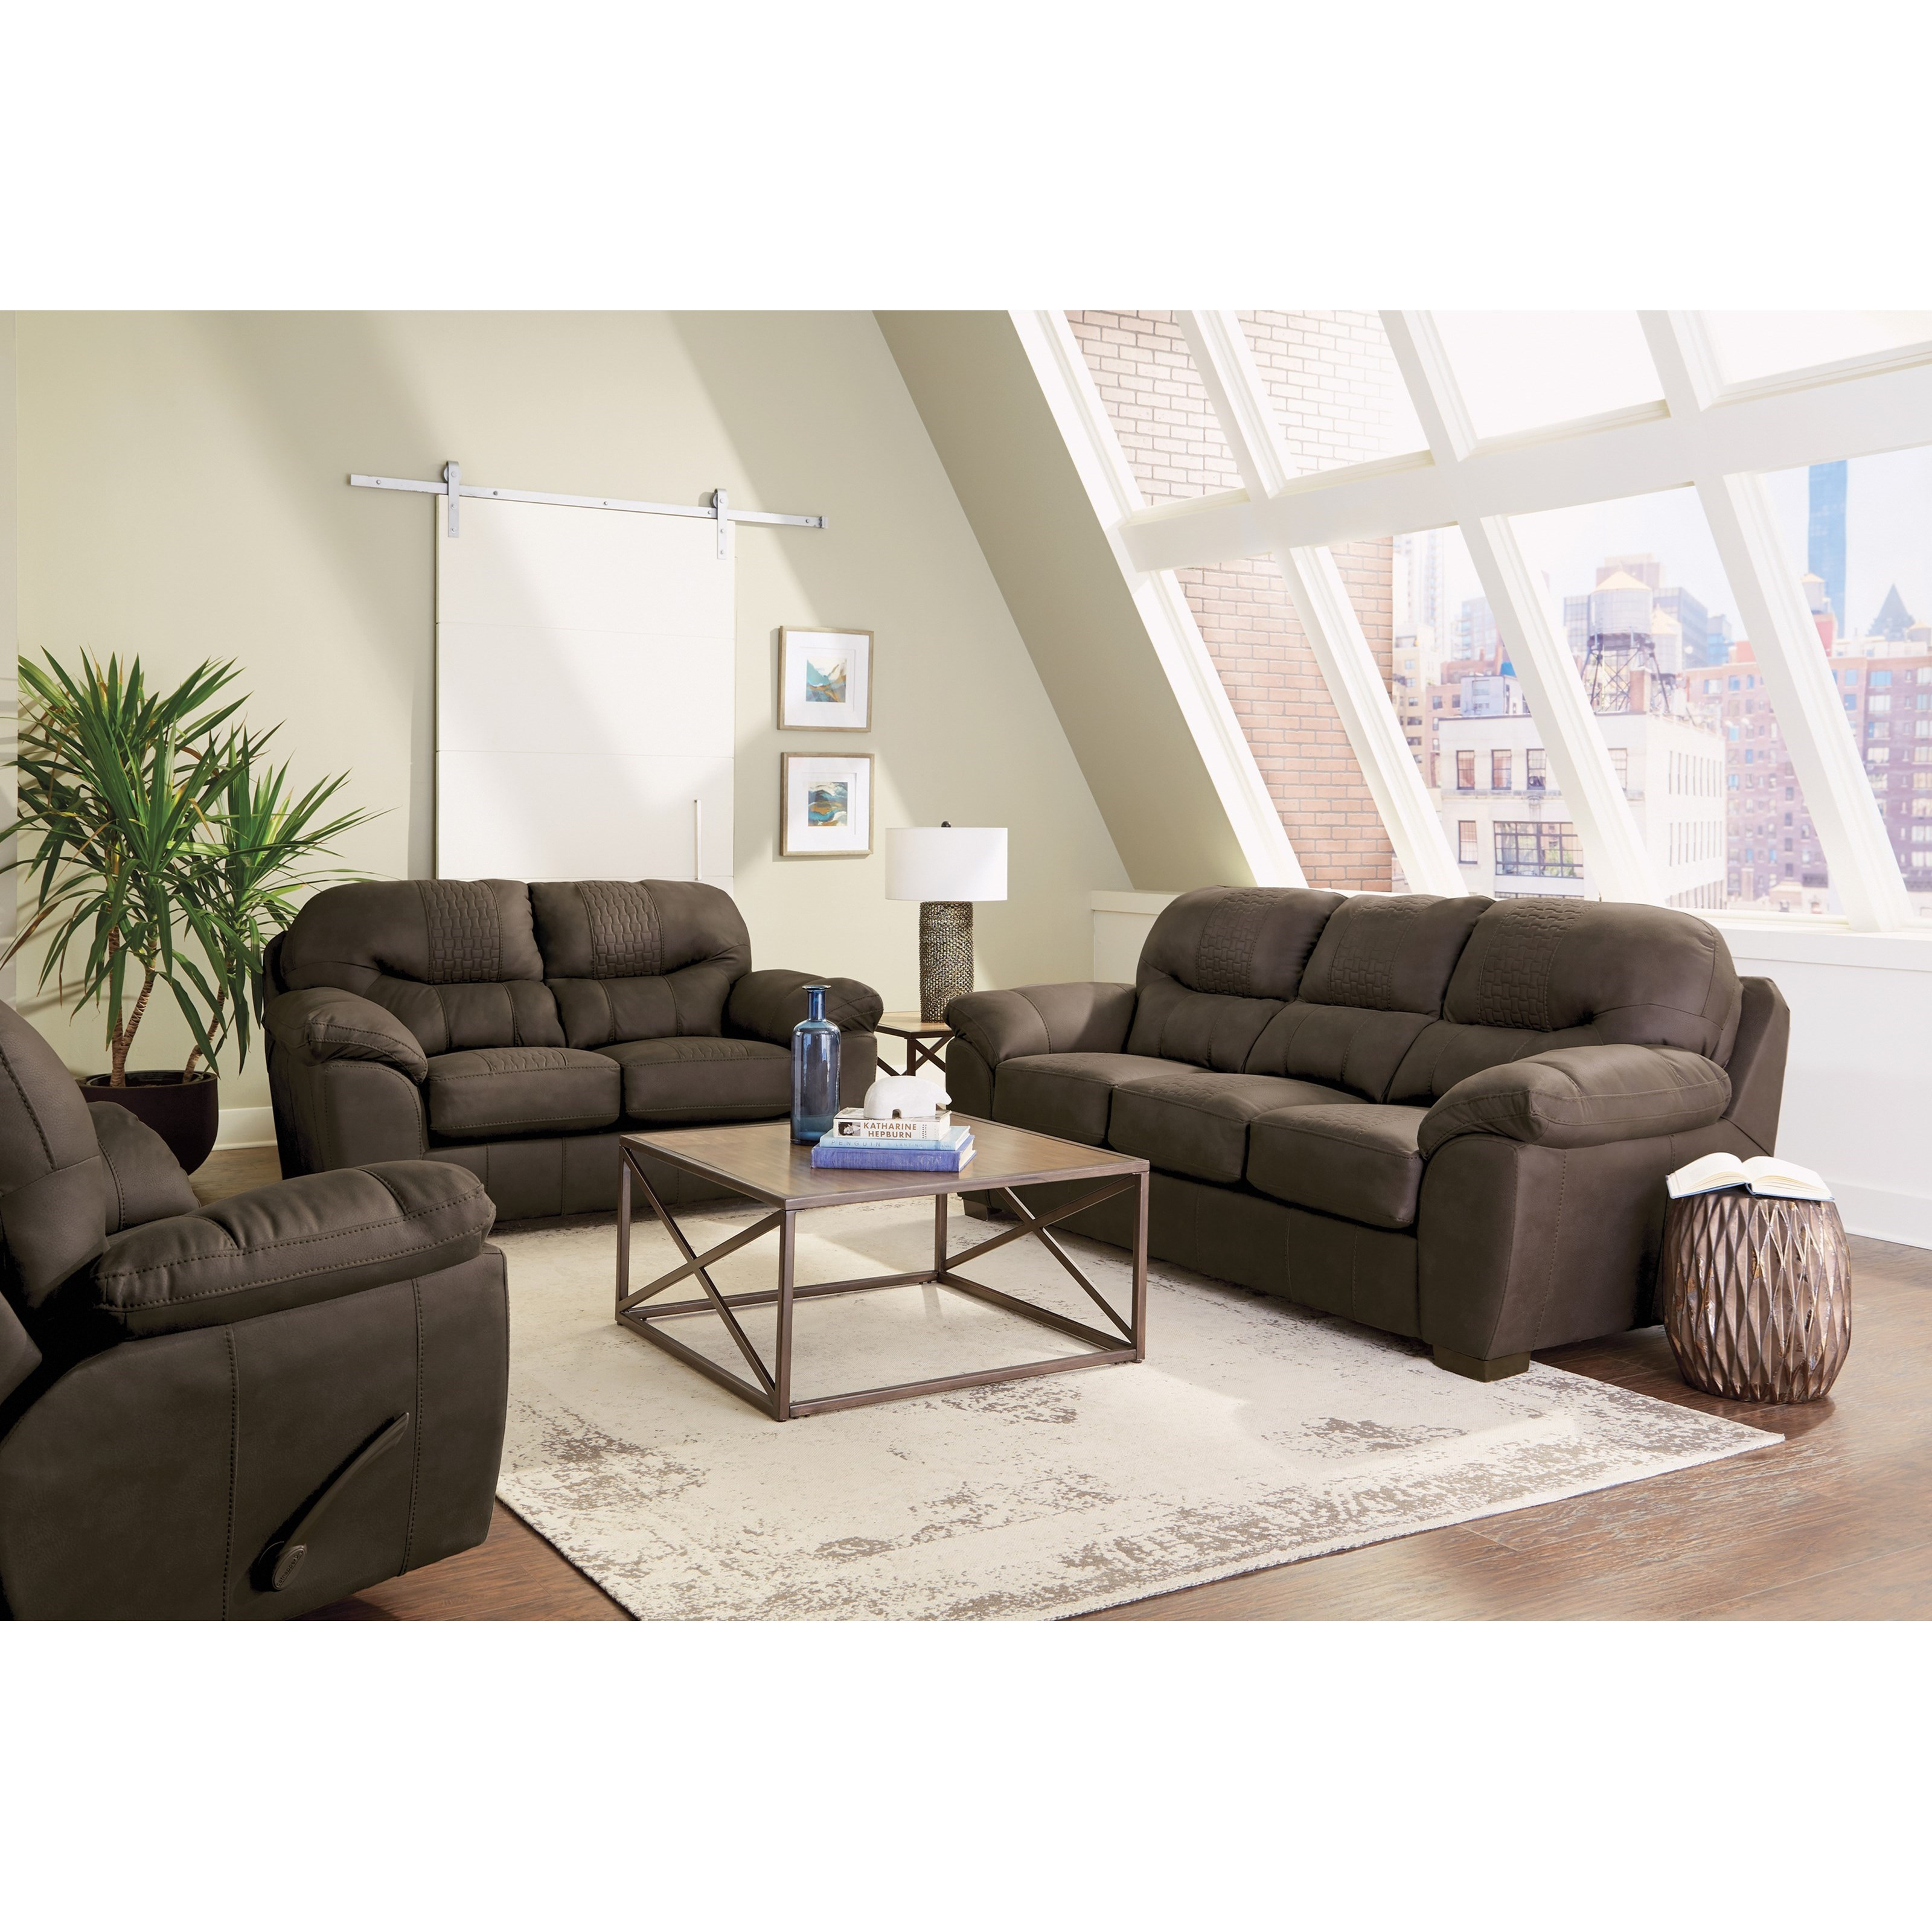 Legend Stationary Living Room Group by Jackson Furniture at Northeast Factory Direct